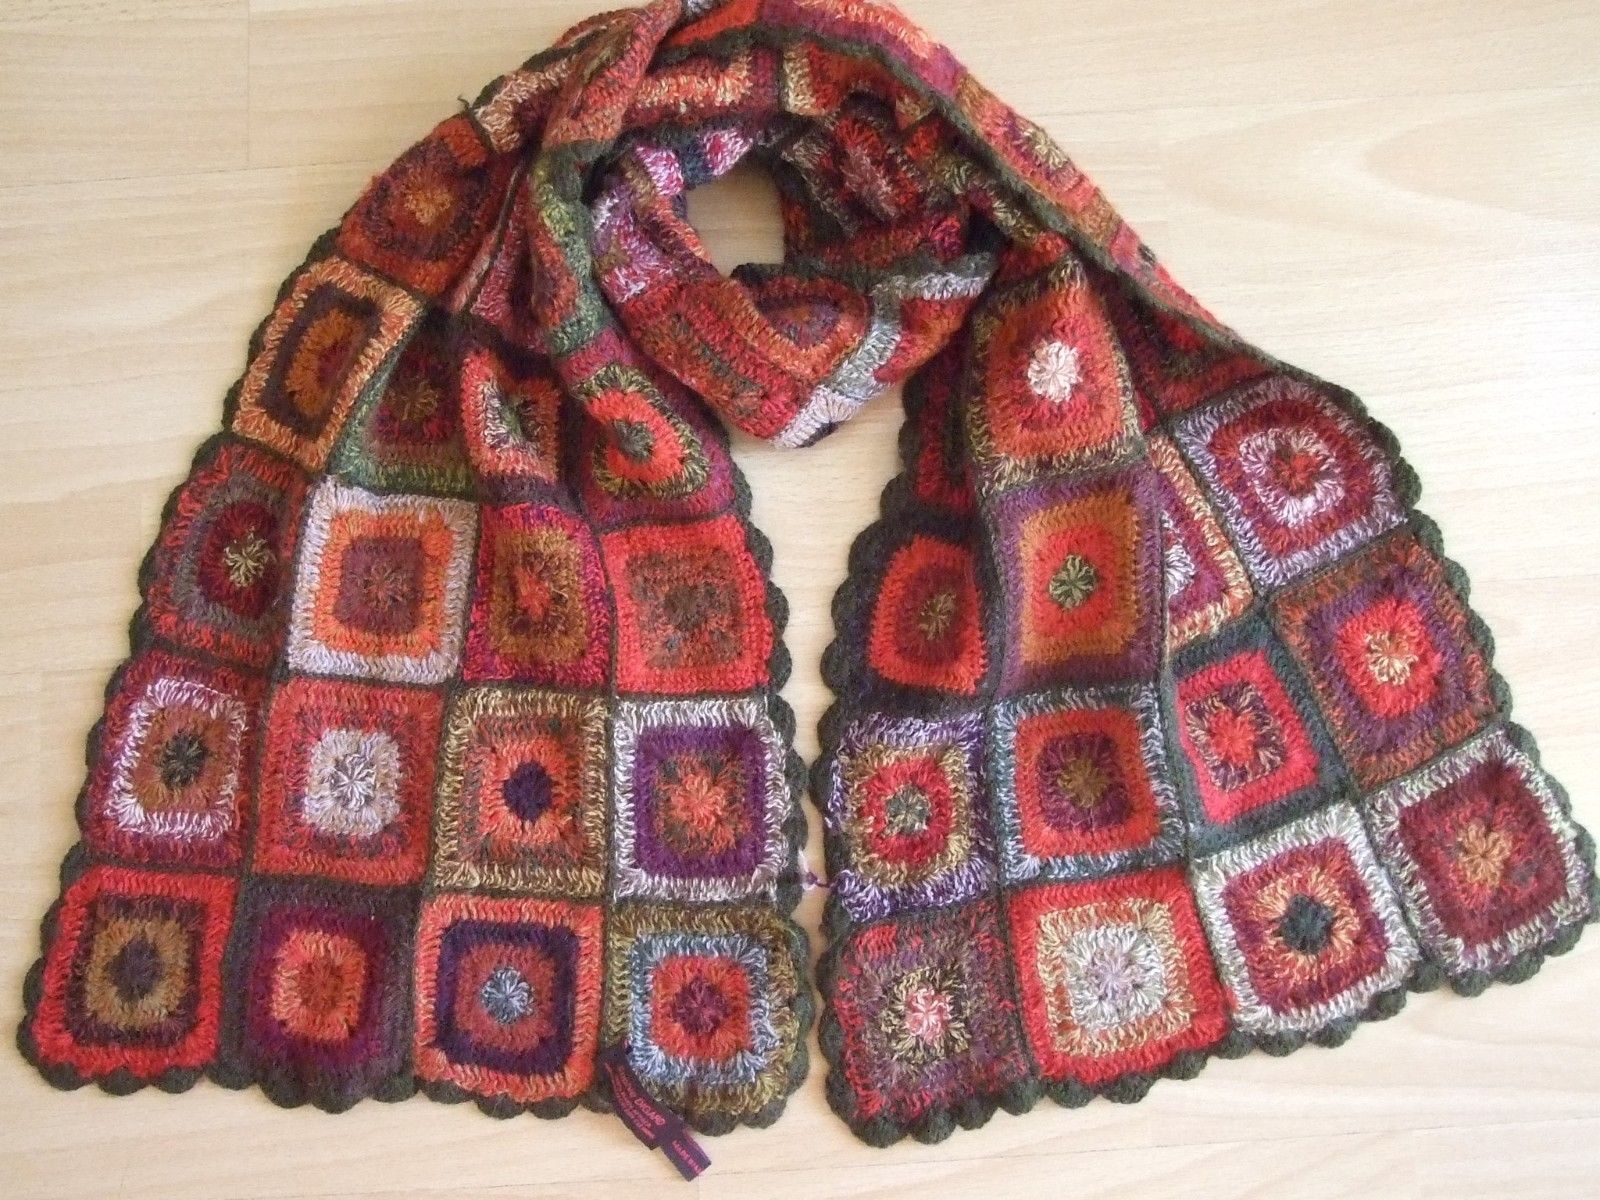 f7d308eaf SOPHIE DIGARD Rare Collector s Crochet 100% Baby Alpaca Scarf Ethno ...